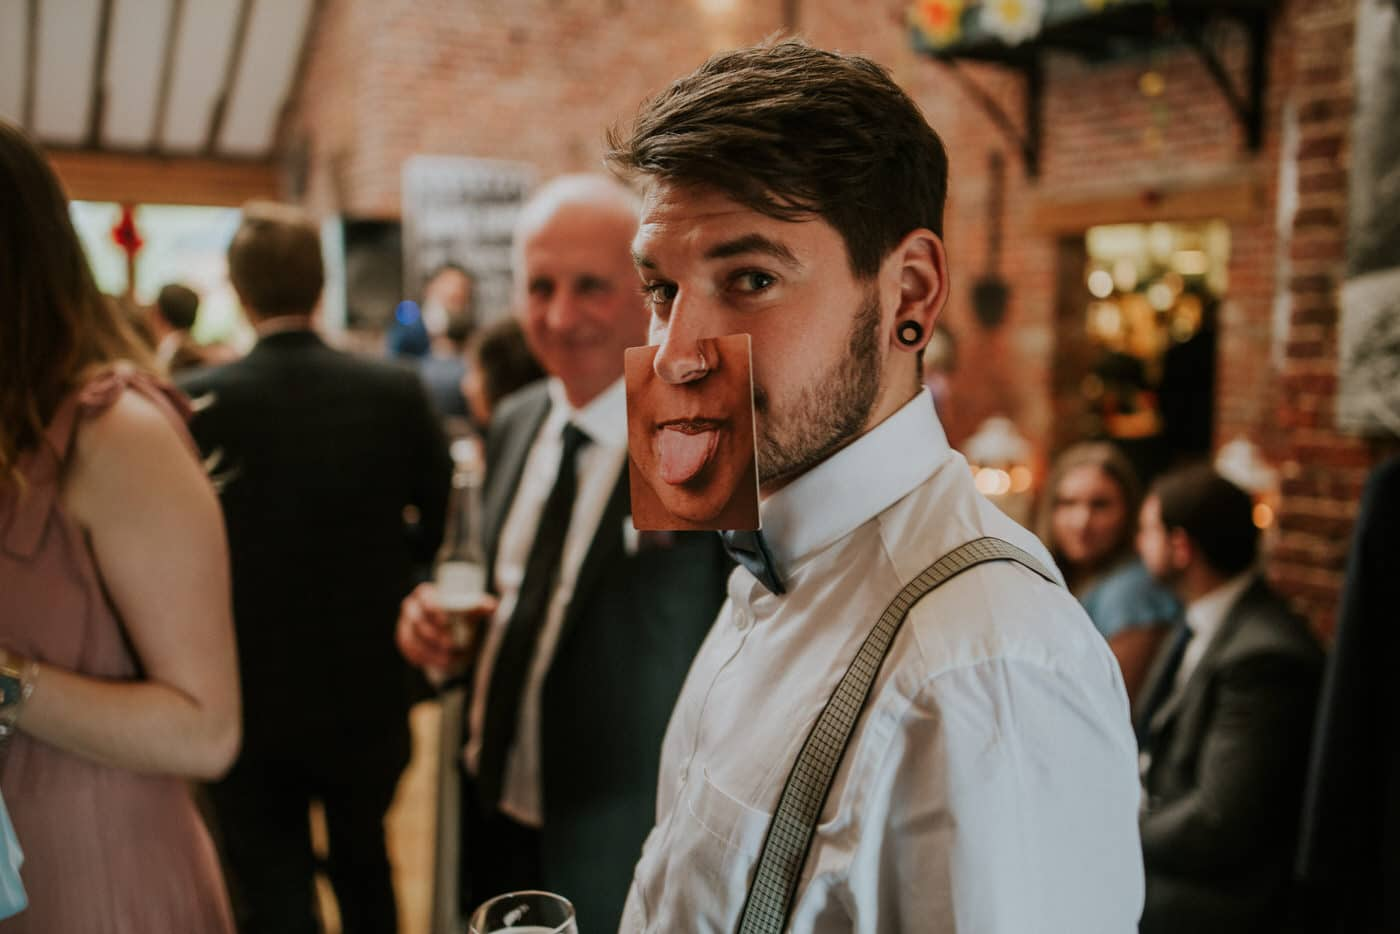 A man wearing a comedic mouth card at a wedding